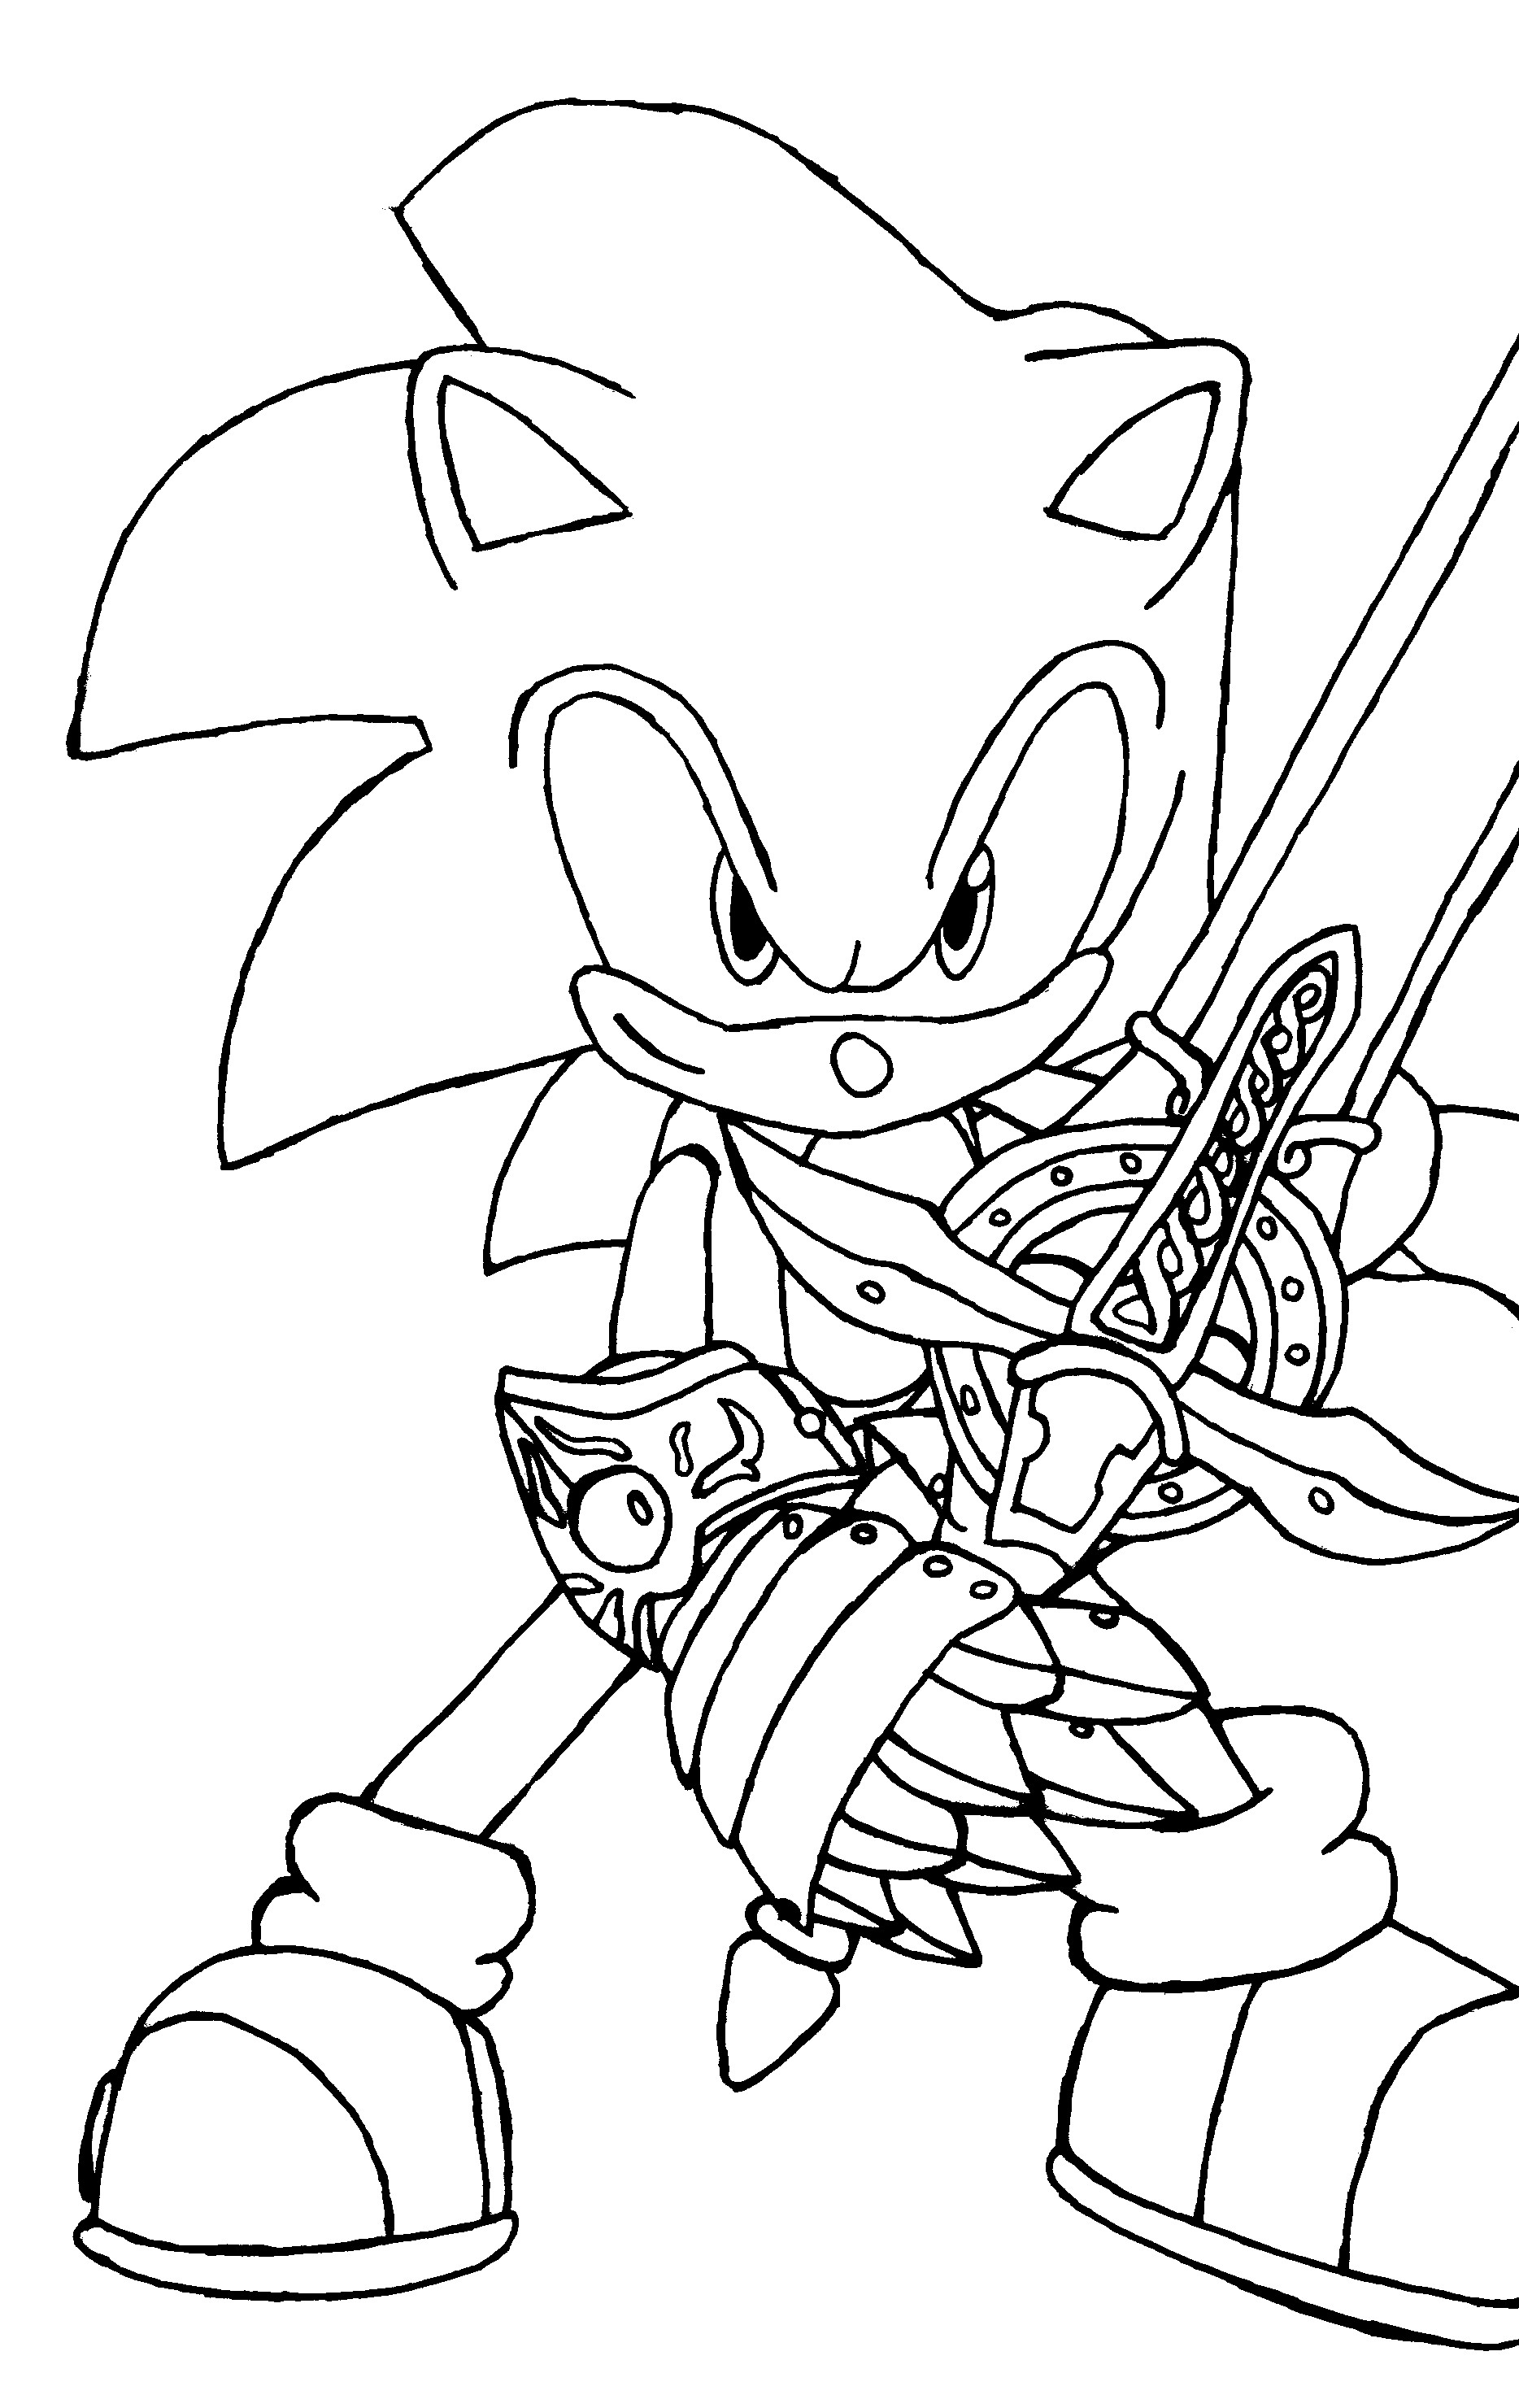 Sonic The Hedgehog coloring #6, Download drawings